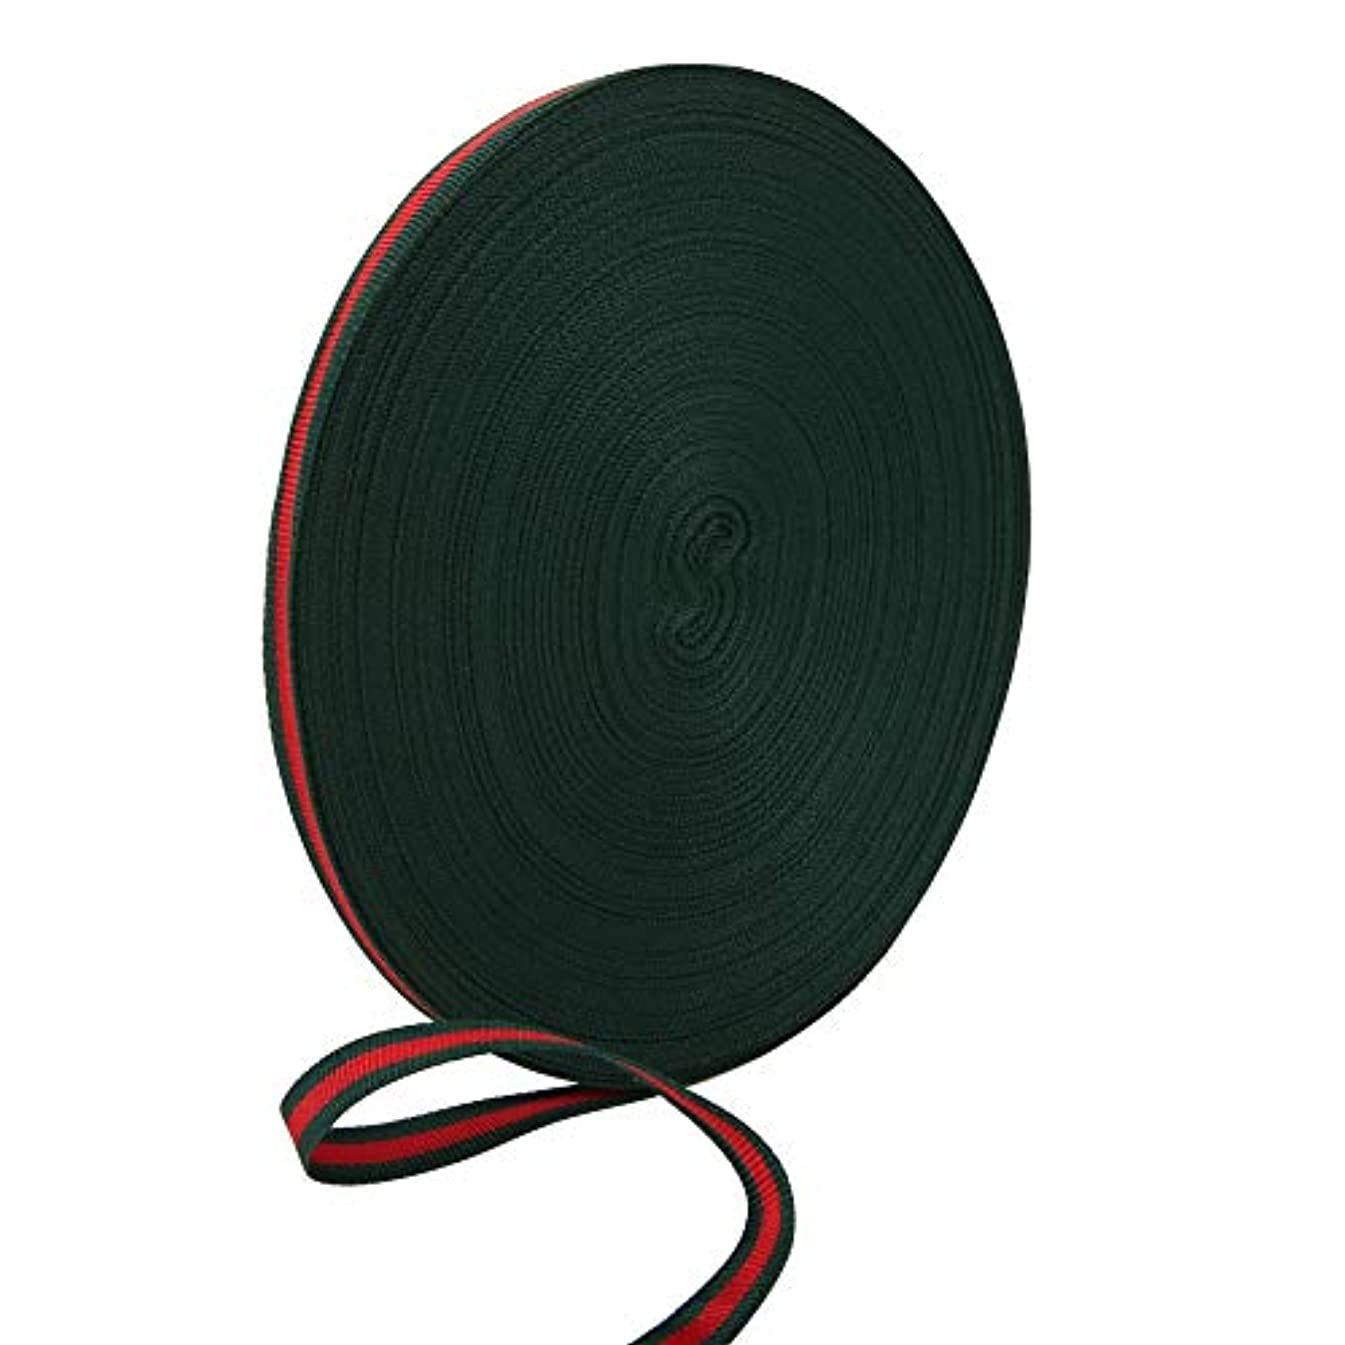 Teemico 1 Roll of 55 Yards Red Green Grosgrain Ribbon Double Face Striped Ribbon for Sewing Craft Making, 1cm Wide